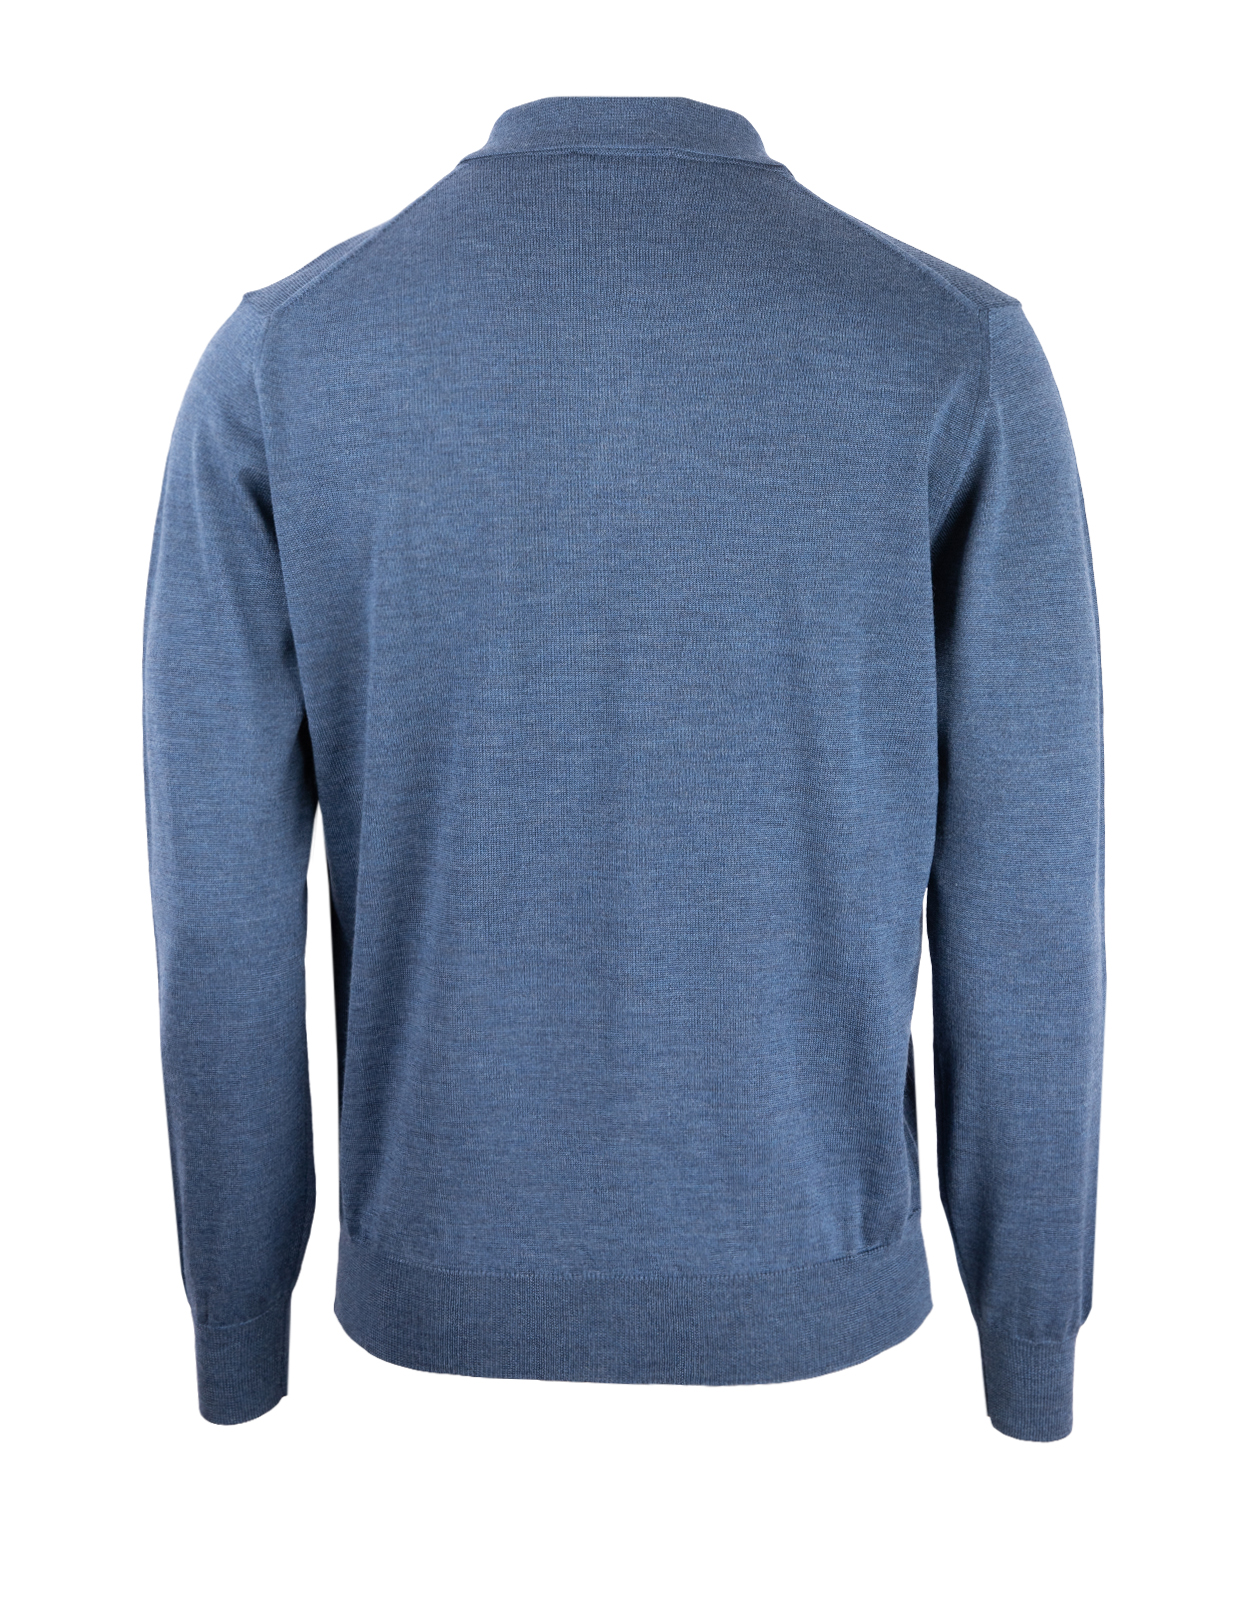 Poloshirt Sweater Merino Denim Stl L